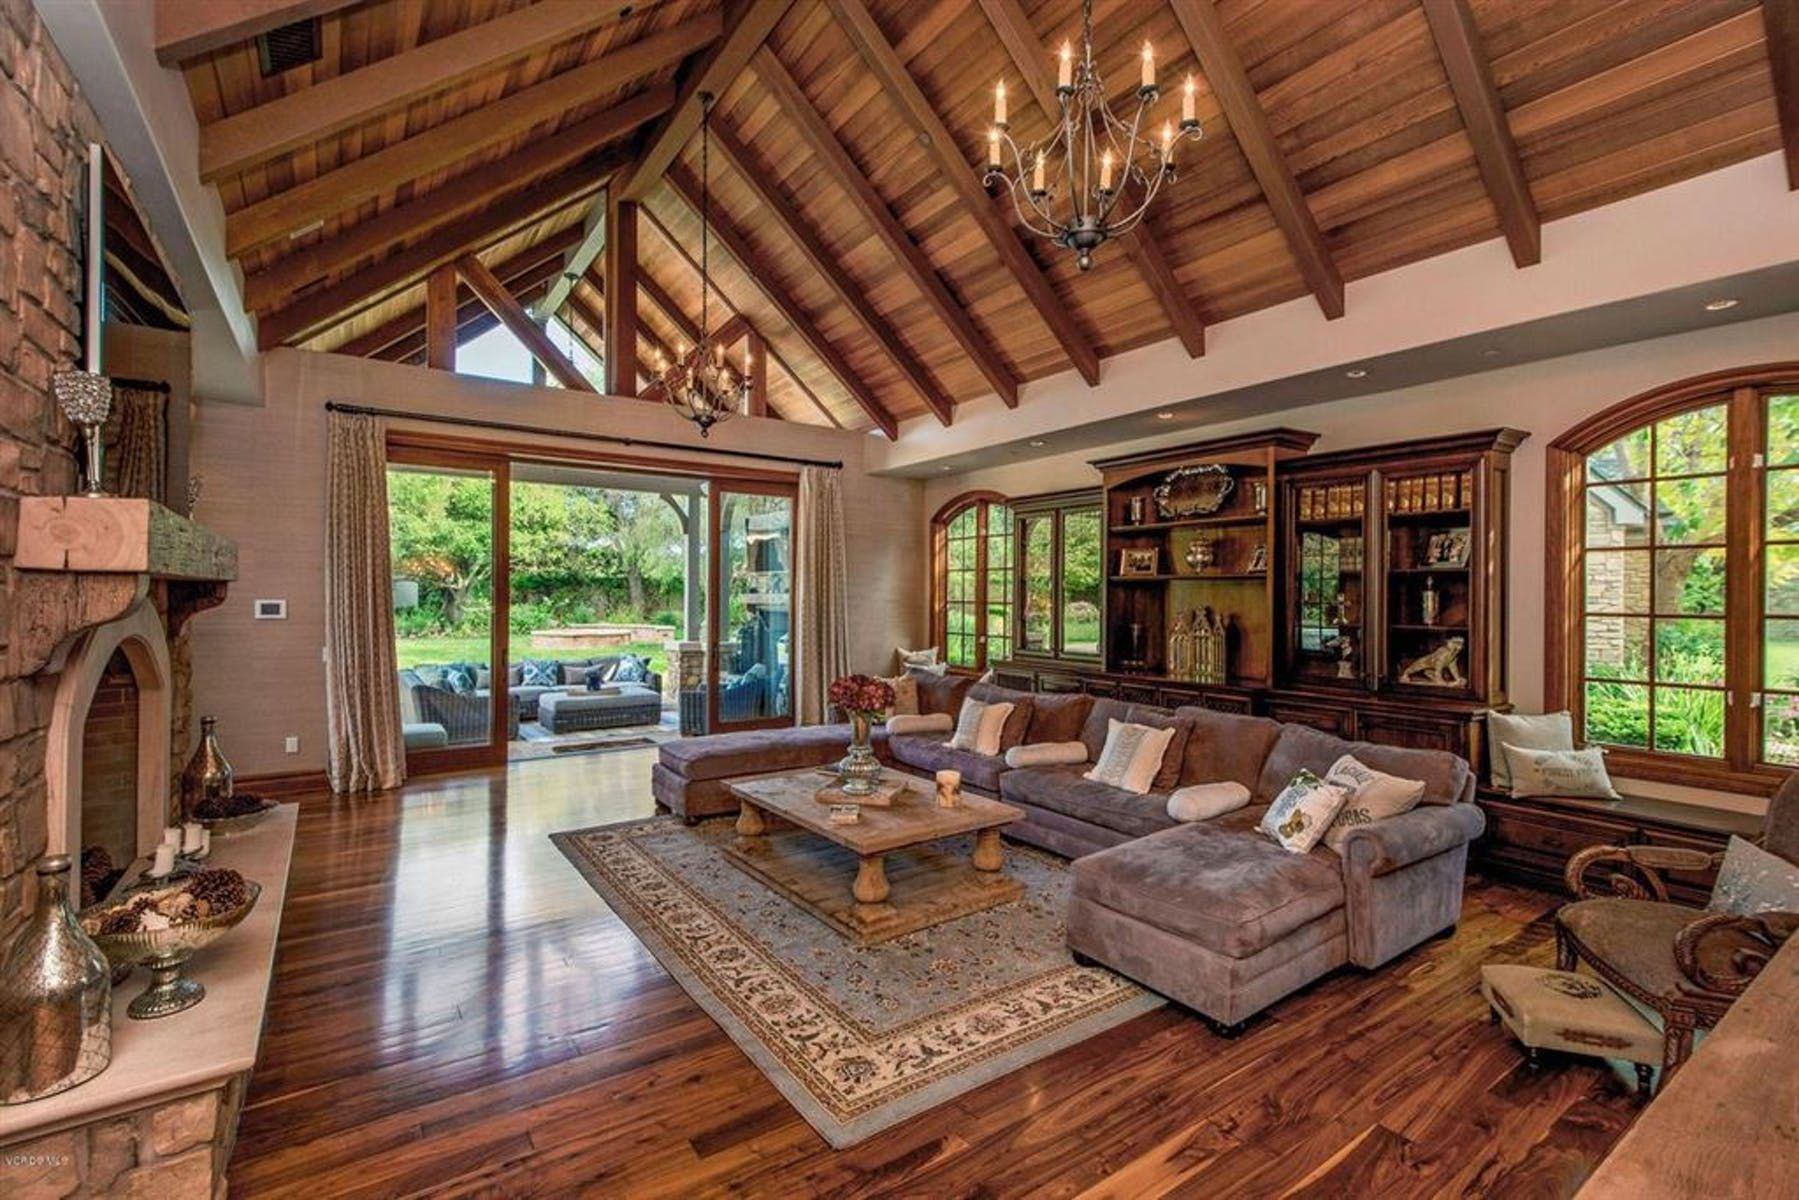 101 Country Style Living Room Ideas (Photos) in 2020 ...